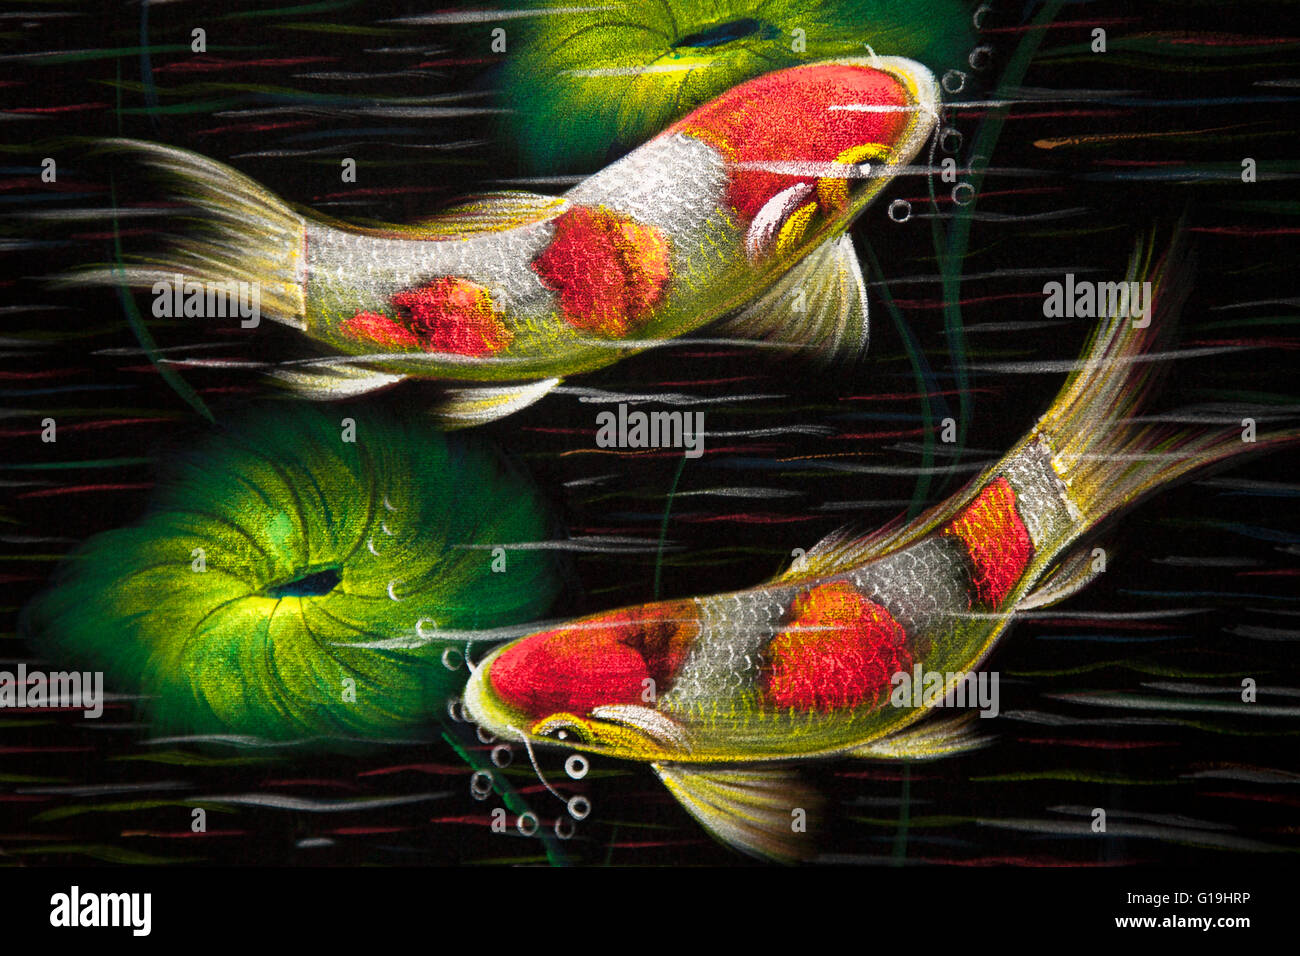 Street art of Thailand, with the sweeping curves of fish blowing bubbles. - Stock Image